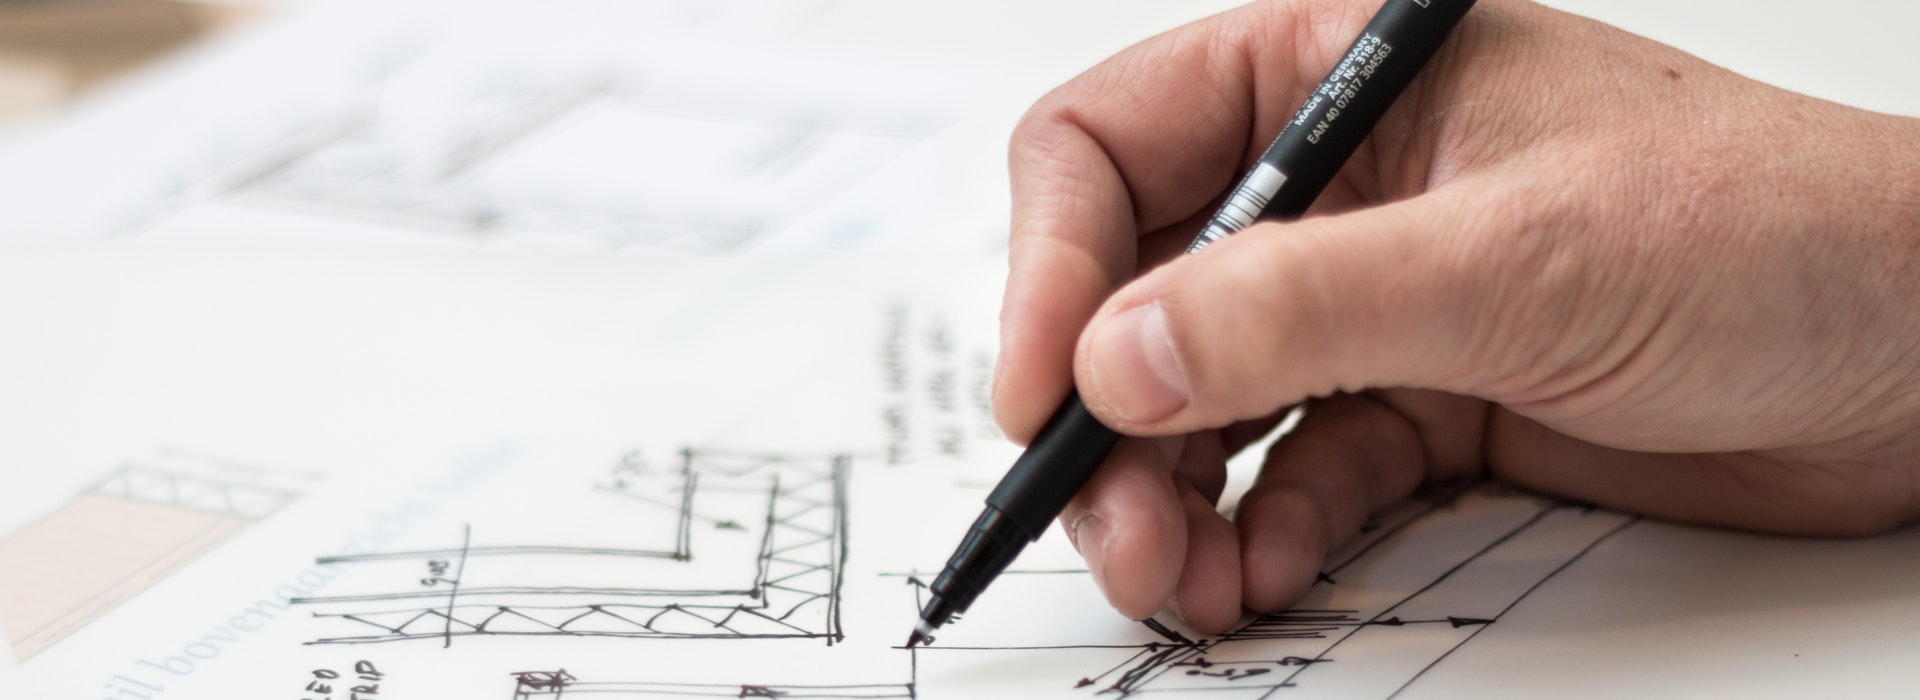 A man's hand holds a black pen over an architectural diagram